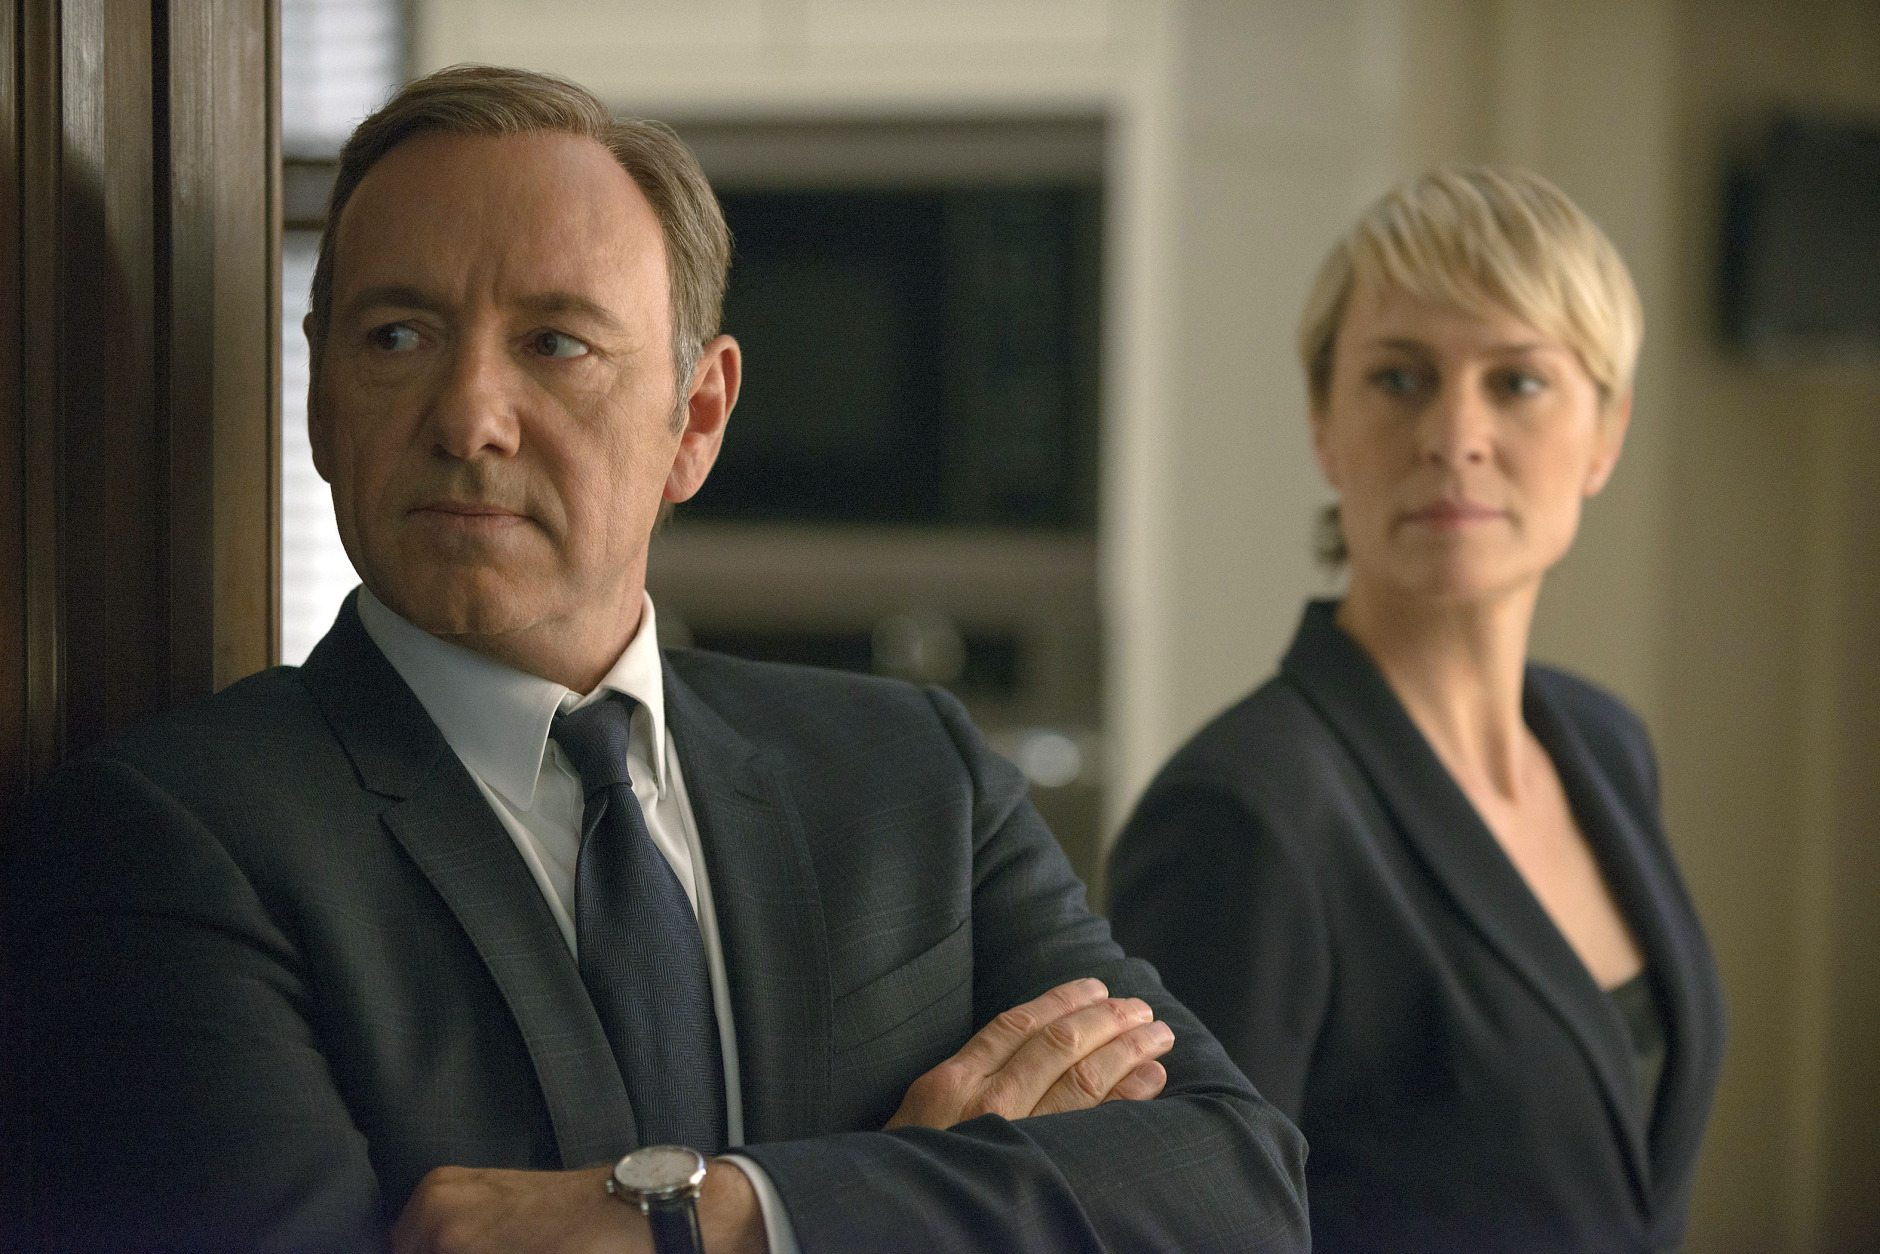 Snowed-in Boston begs for early release of 'House of Cards'